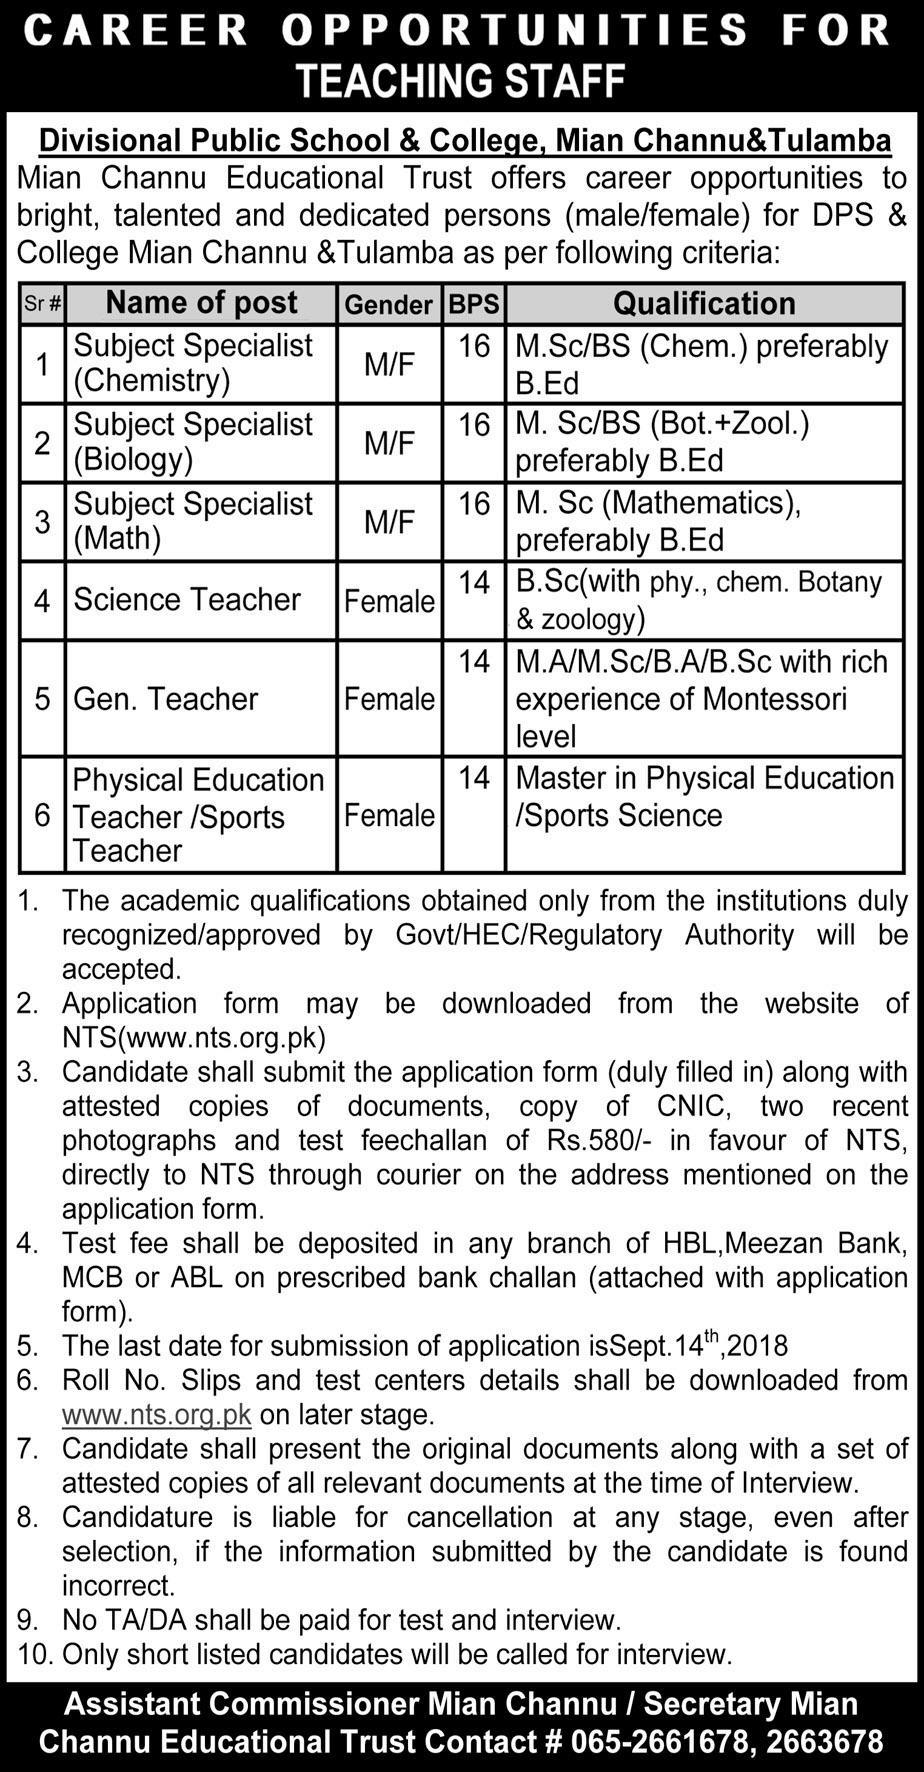 DPS College Mian Channu Tulamba NTS Jobs Application Forms 2018